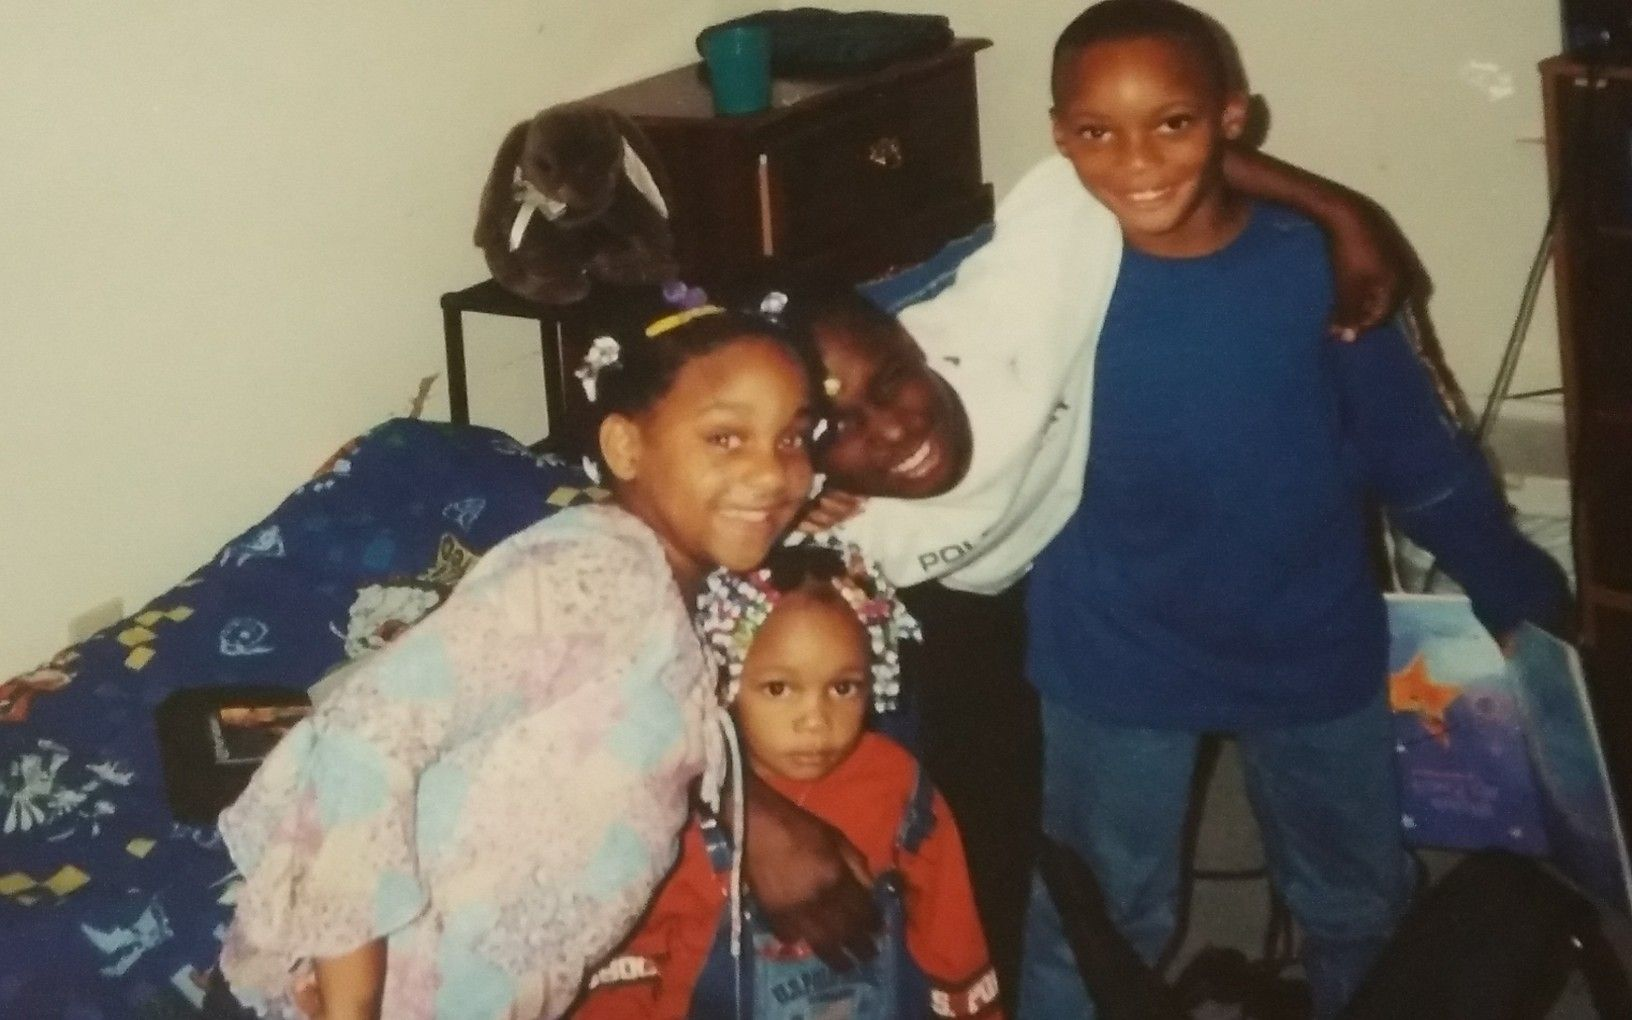 #Tbt I was enjoying with my cousins while in M.S. visiting